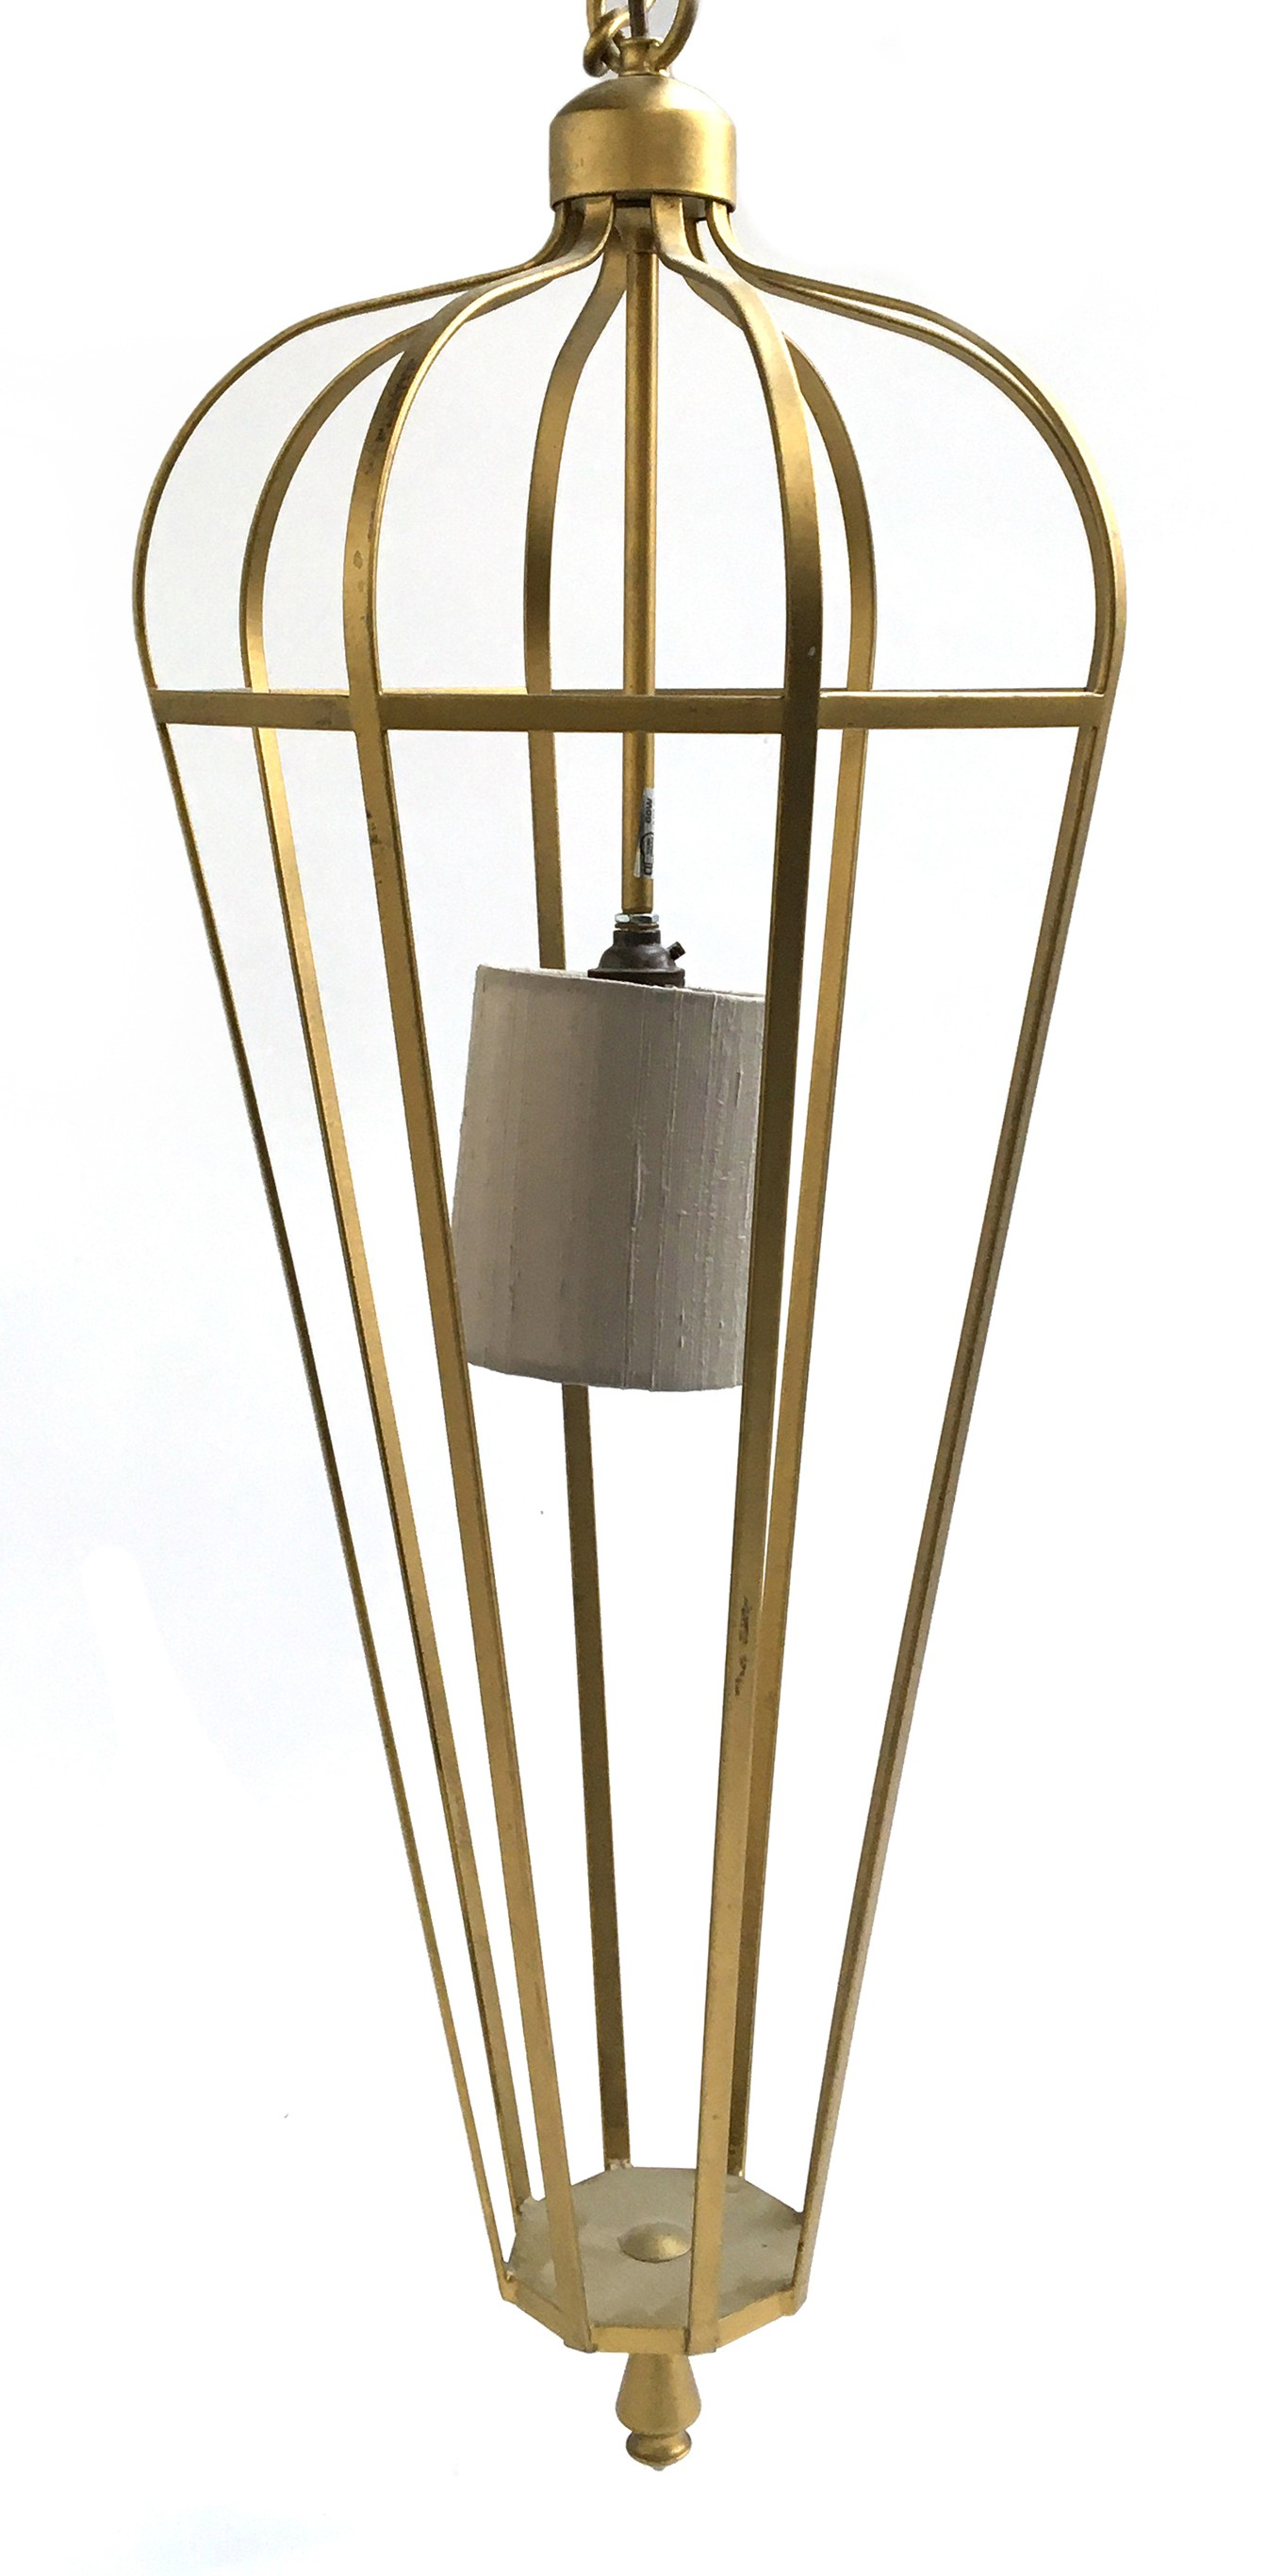 A Jim Lawrence hanging chandelier, 87cm high, the chain approximately 110cm long